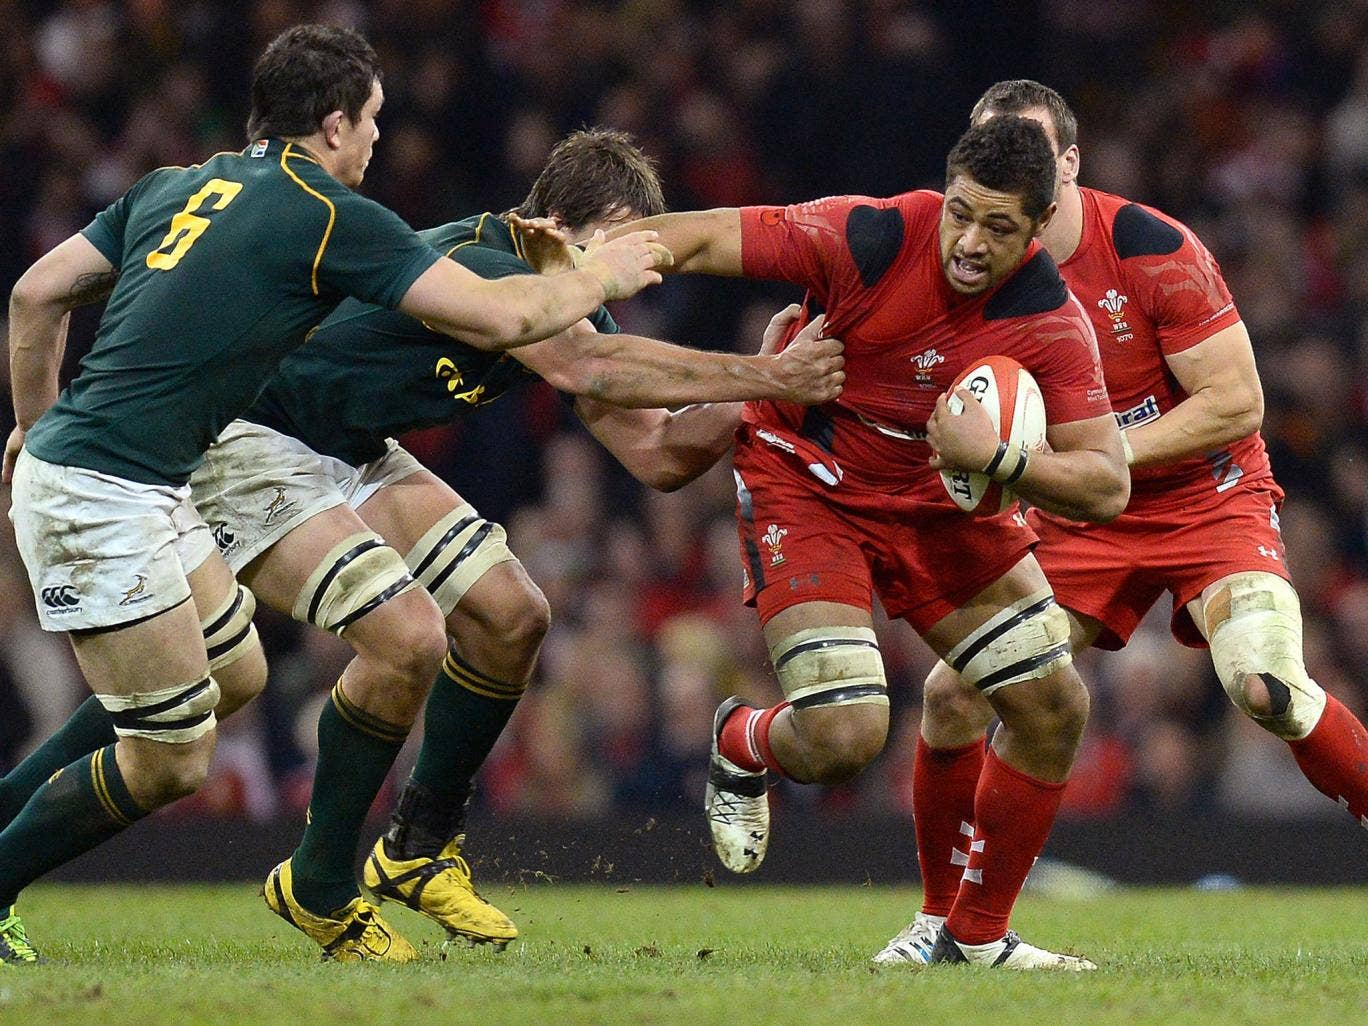 Wales Number Eight Toby Faletau attempts to break the tackle of the South African defence